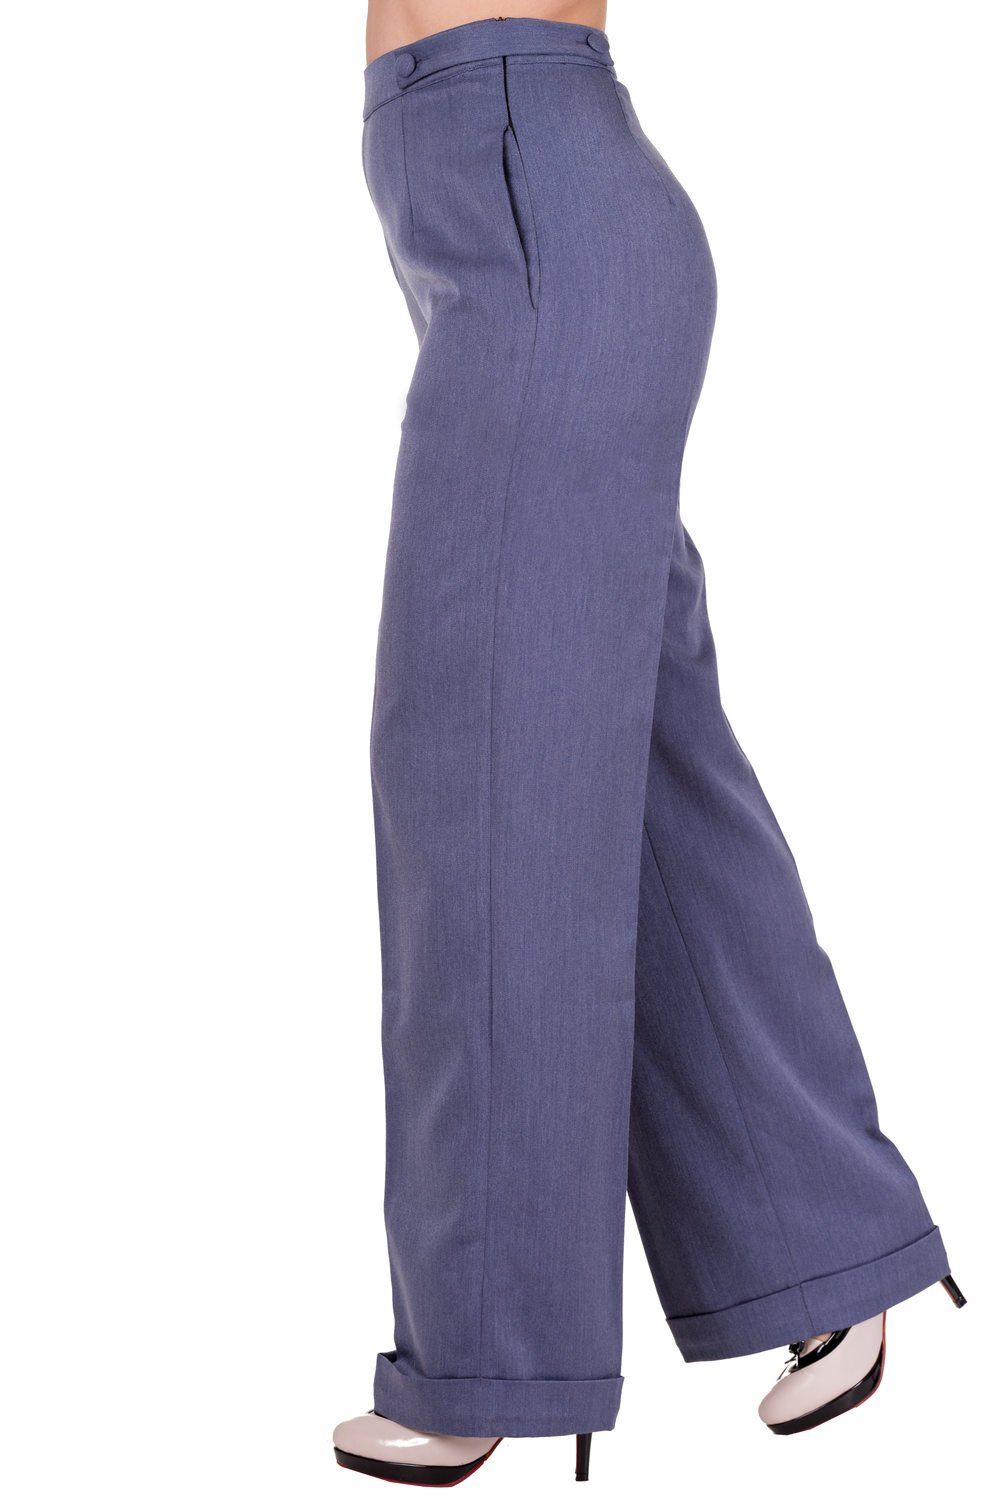 1940s Pants History- Overalls, Jeans, Sailor, Siren Suits Denim Banned Party On Trousers - 26 to 34 Inch Waist $33.82 AT vintagedancer.com